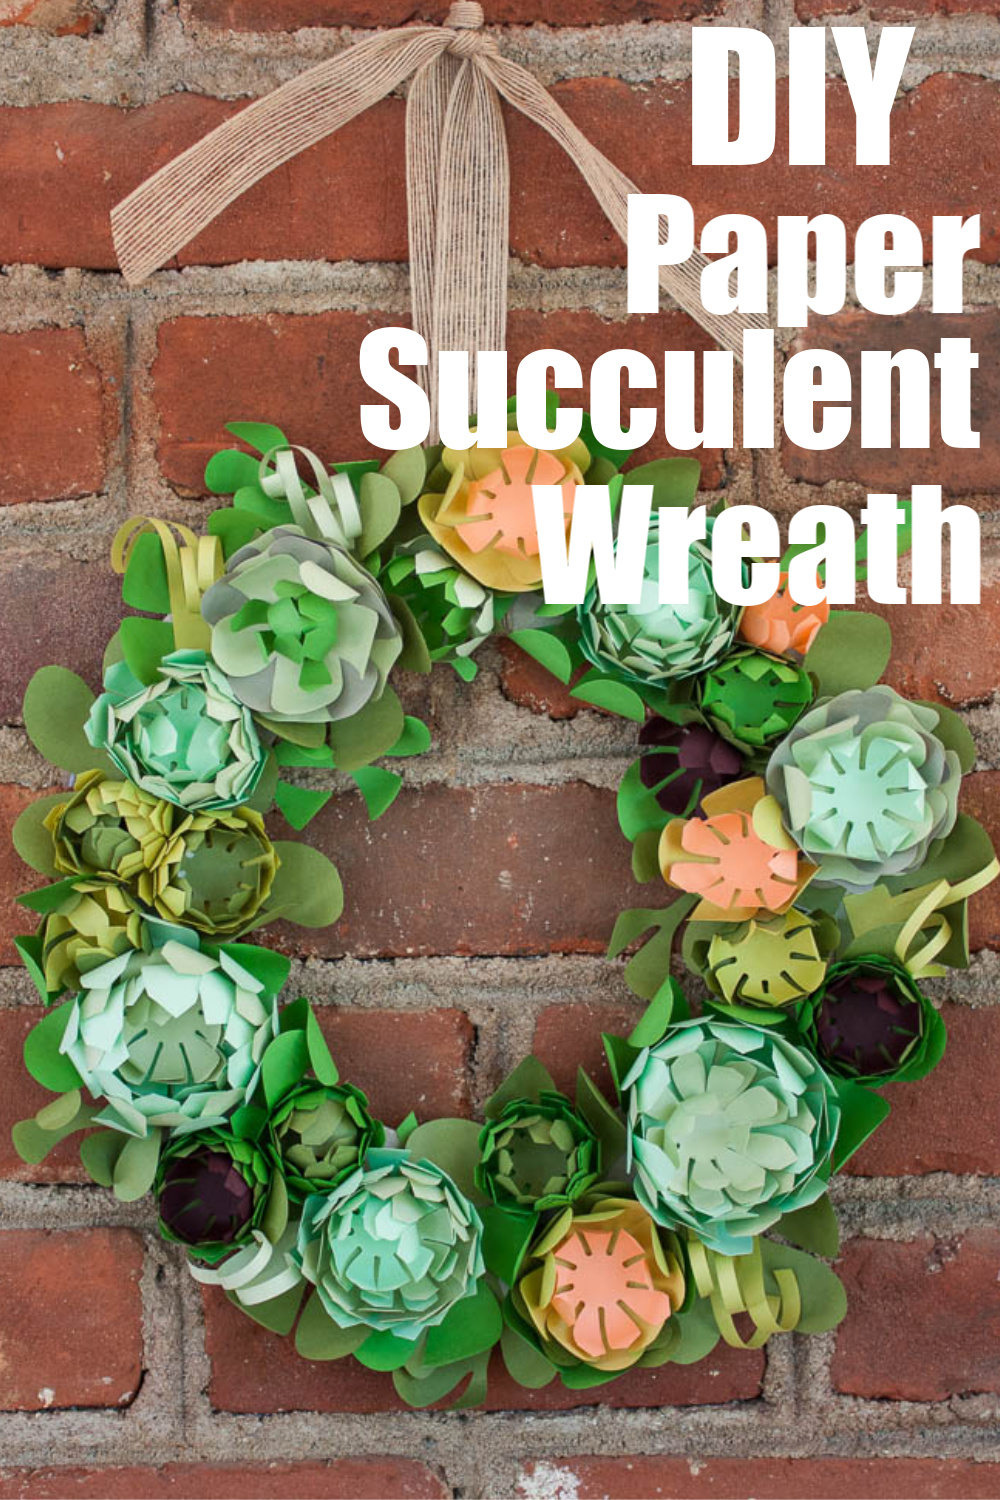 DIY Paper Succulent Wreath - This beautiful wreath was crafted from paper. #succulentwreath #wreath #wreathidea via @spaula